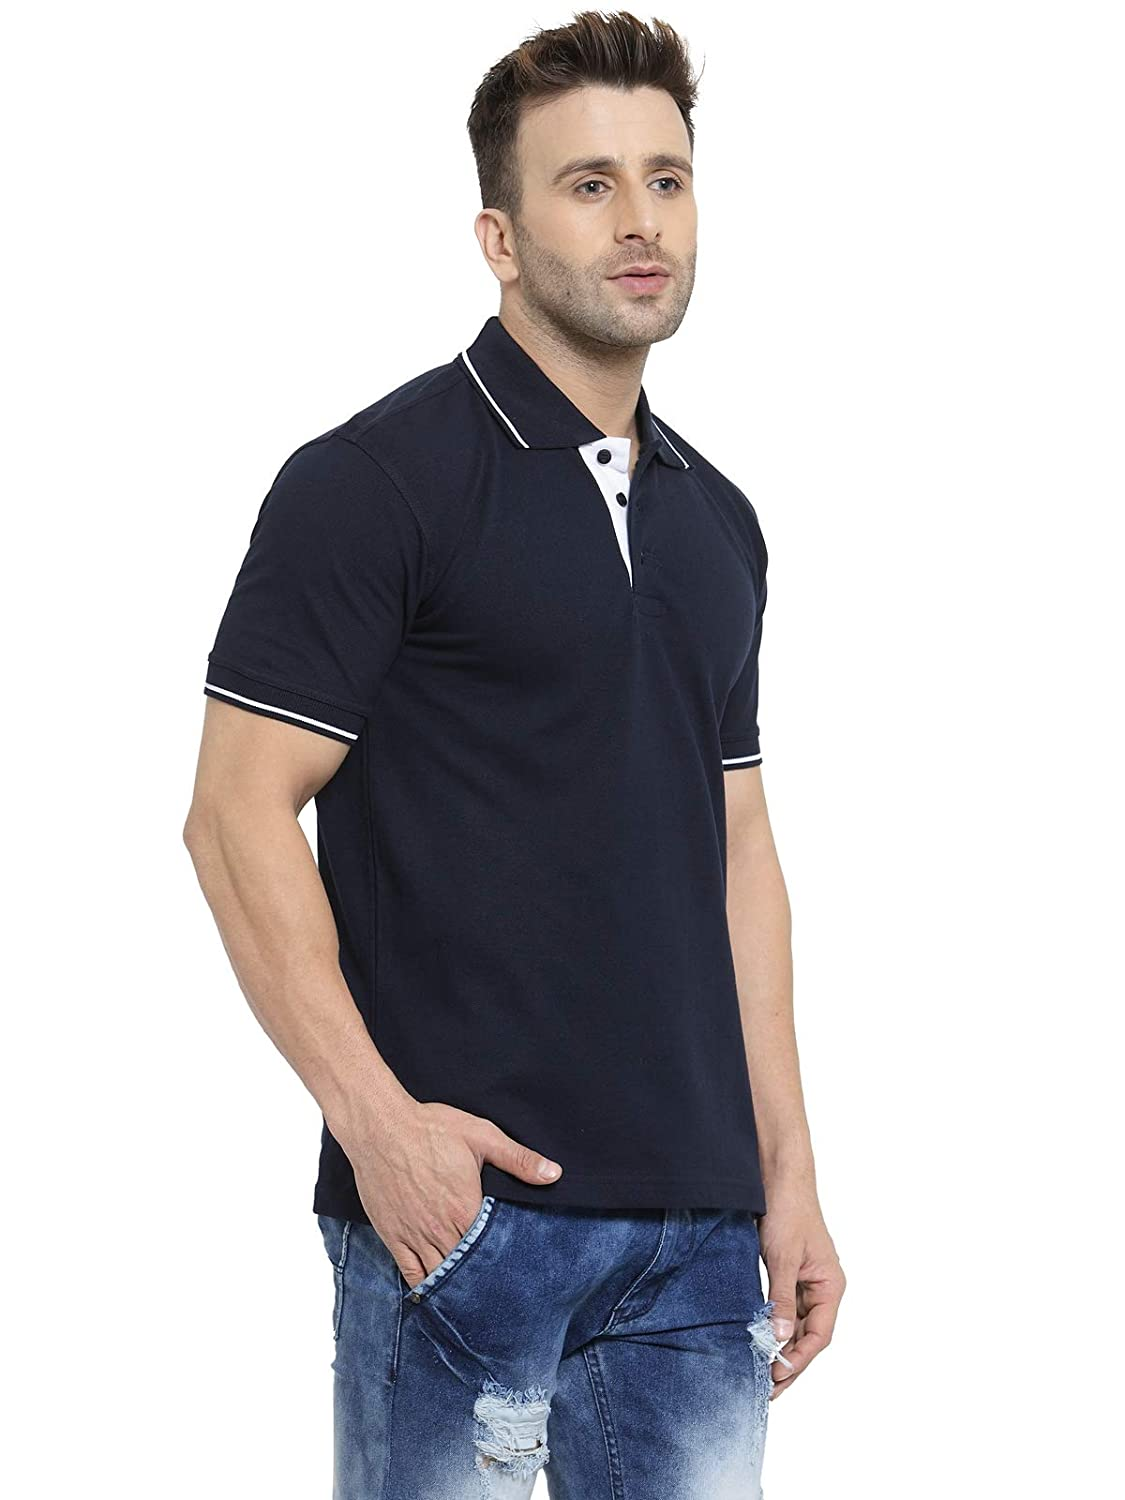 Men's Navy Blue With White Tipping Cotton Polo T-Shirt (XXL-46)